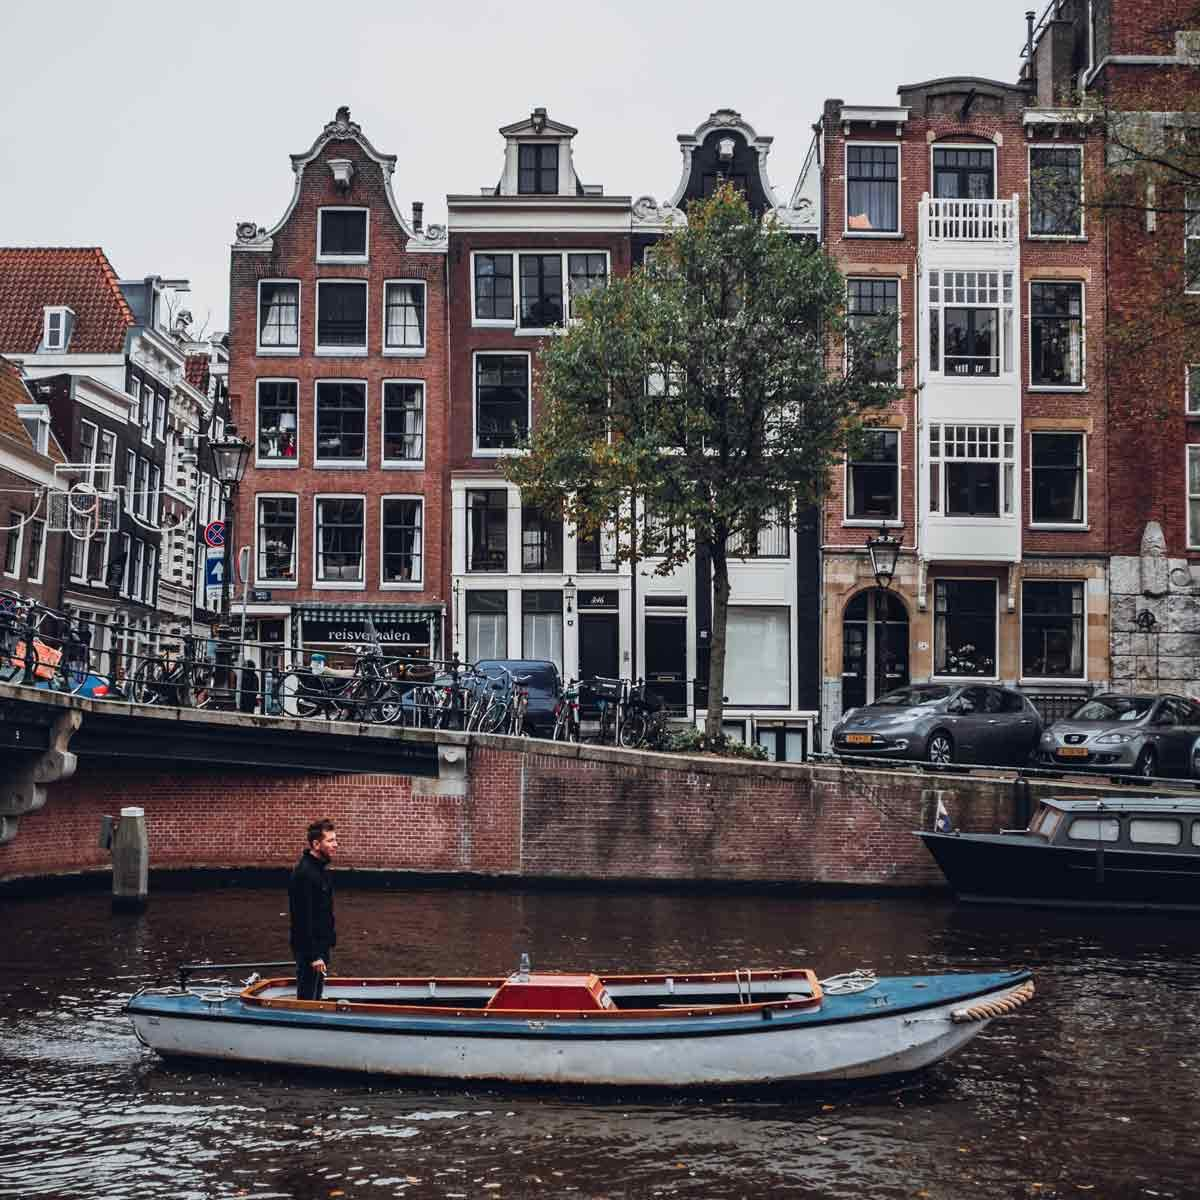 Offbeat Travel: Dream and feel inspired in Amsterdam